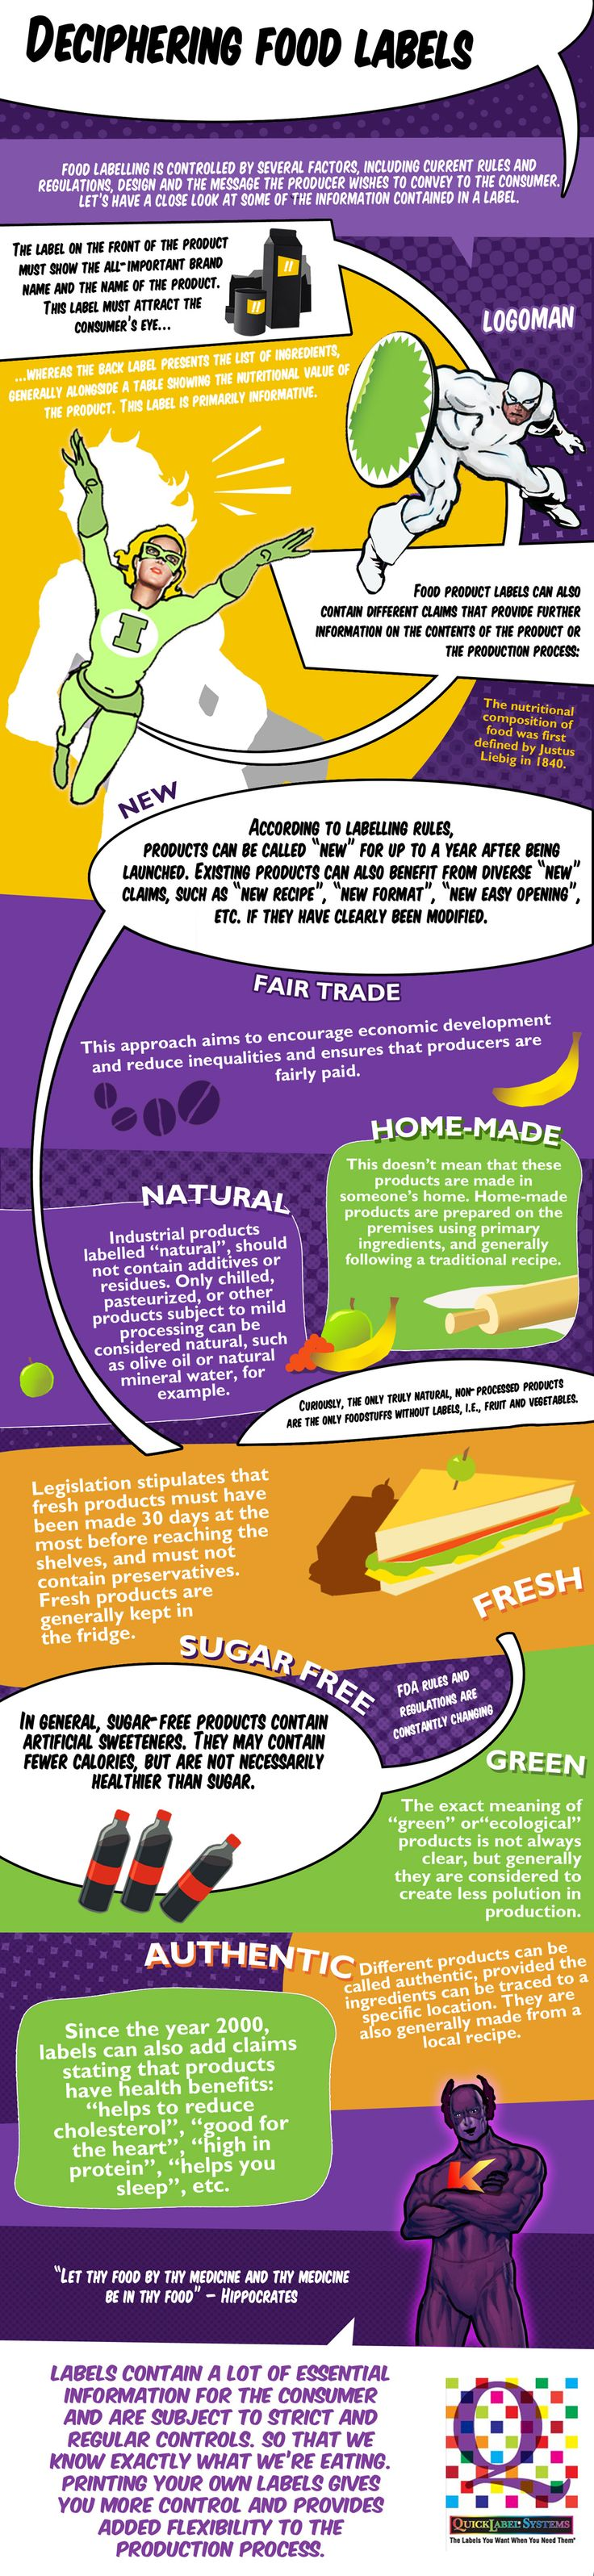 Food Label Printing Image by QuickLabel Systems - This informative Infographic from www.quicklabel.co.uk demonstrates how thoroughly QuickLabel understands the label printing needs of their customers and provide the appropriate label printers for them.